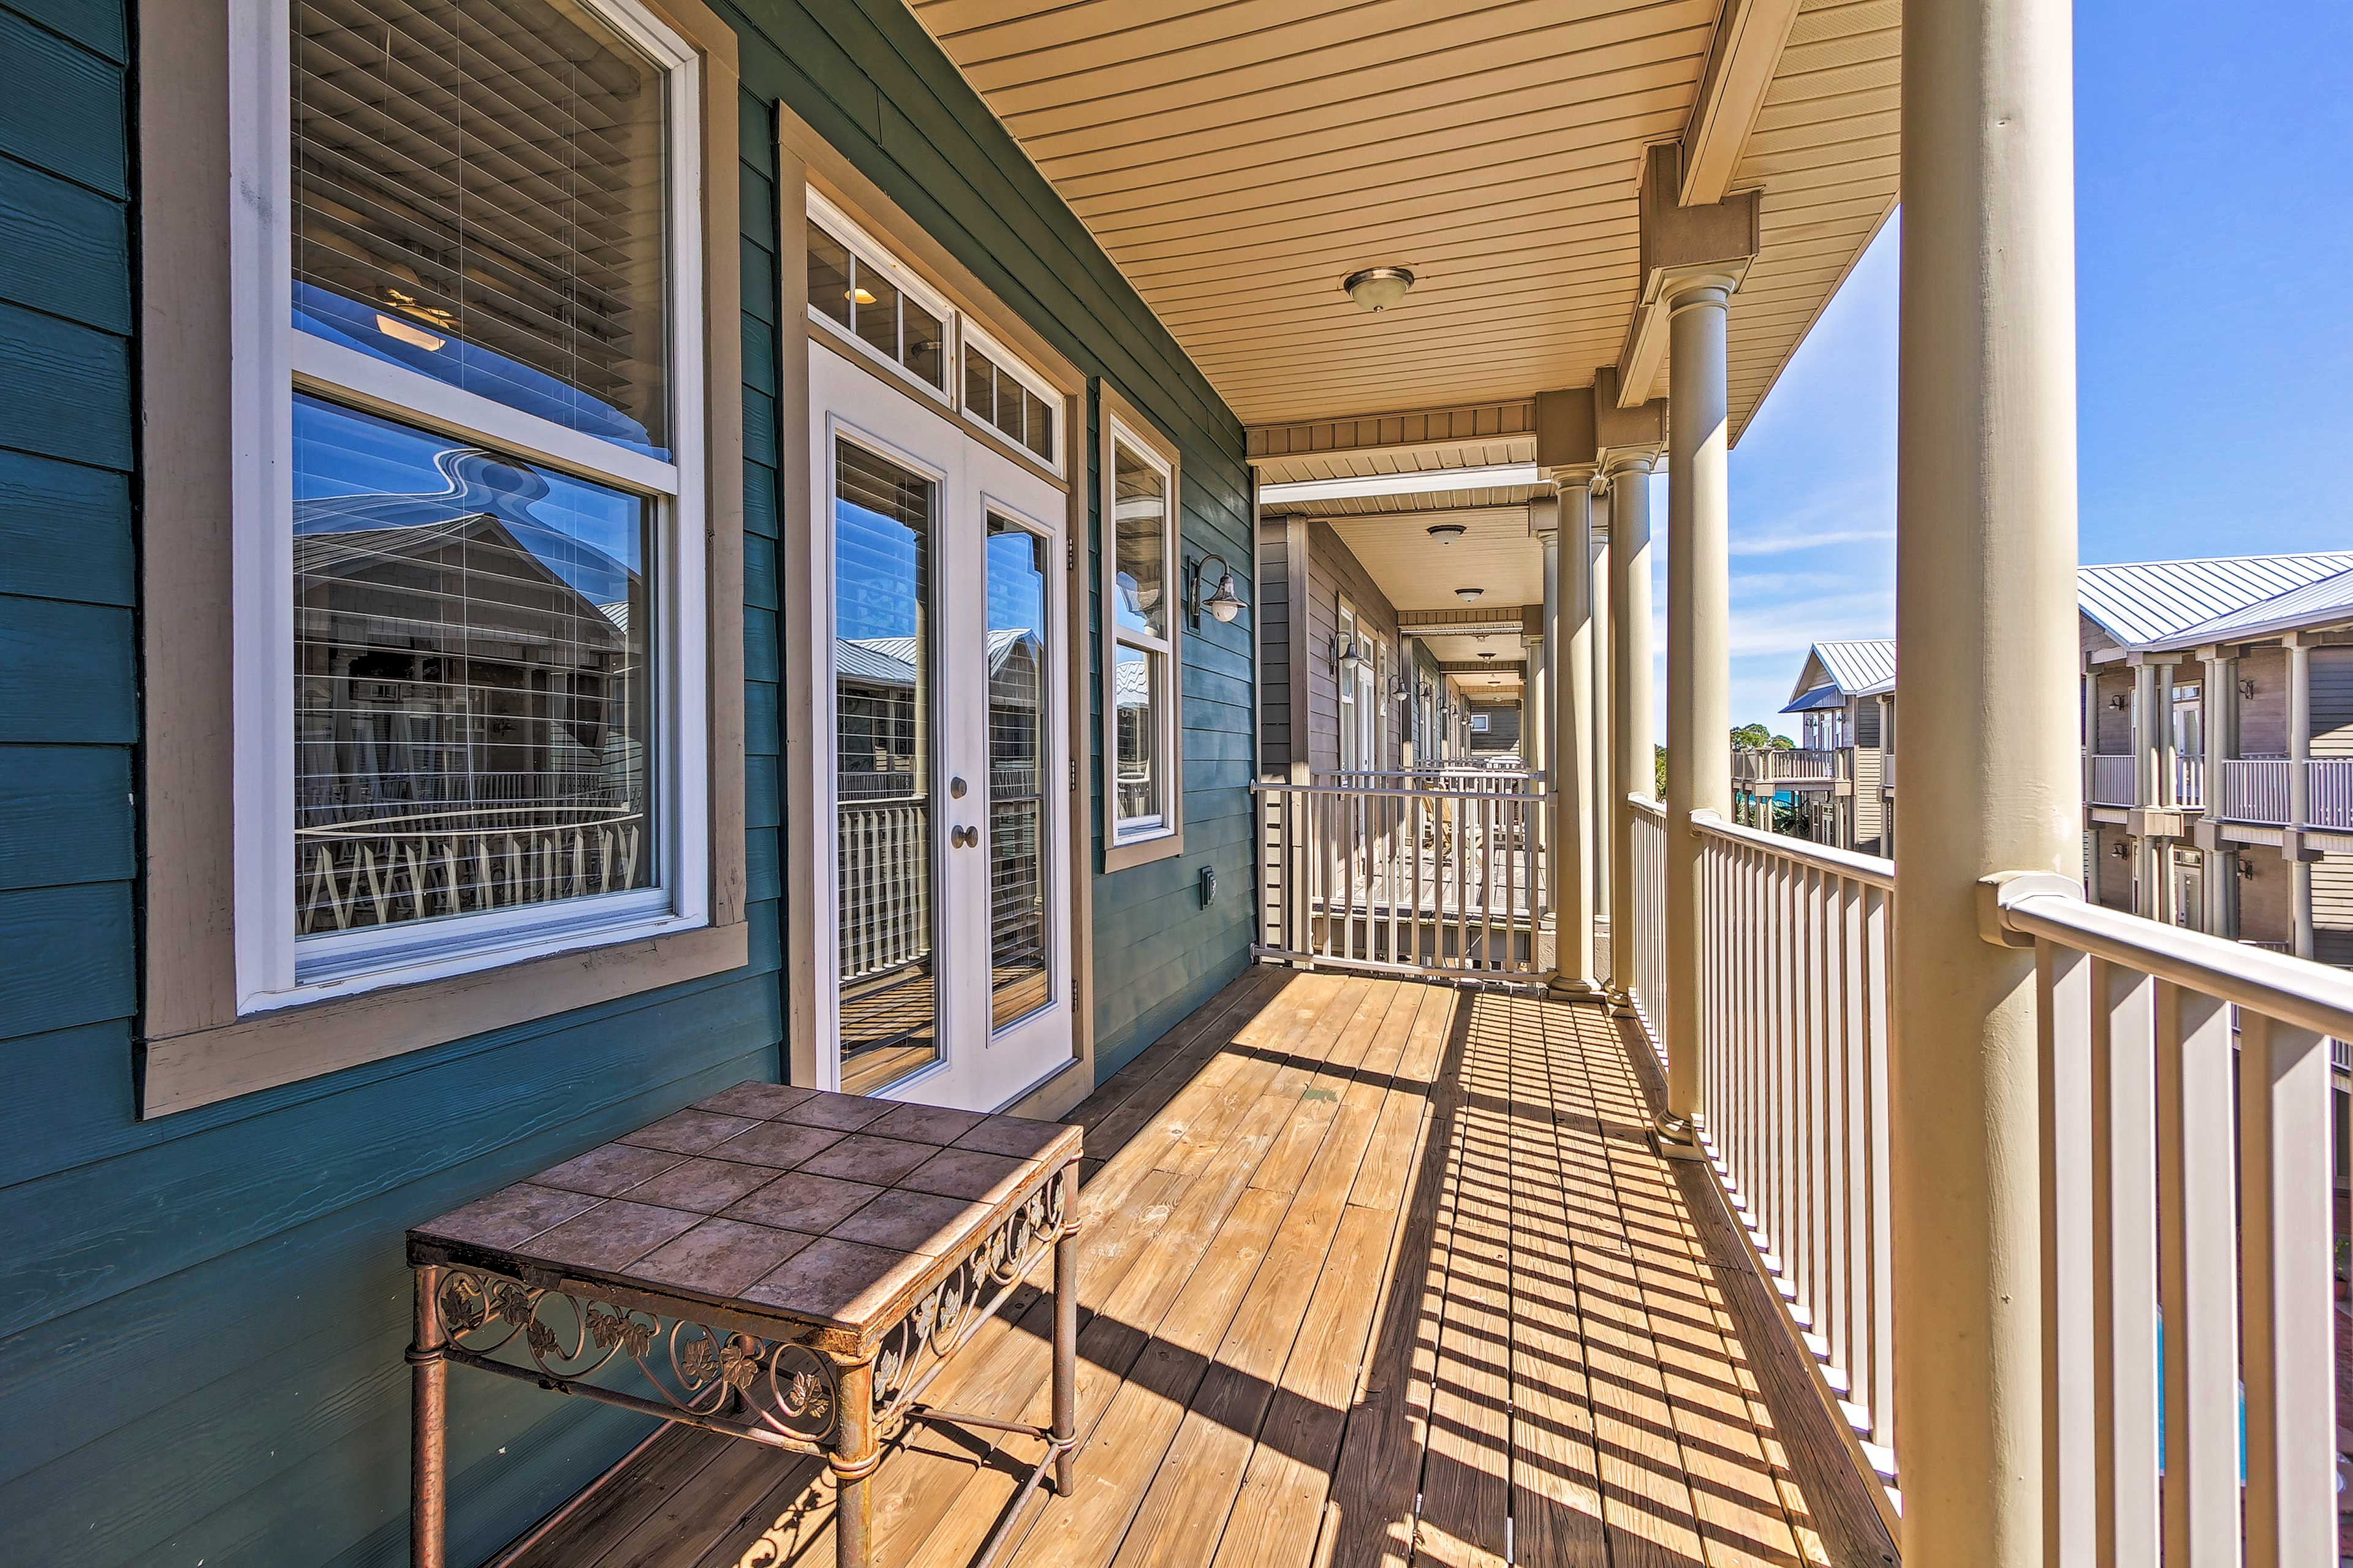 Step out onto the balcony for a cool breeze.